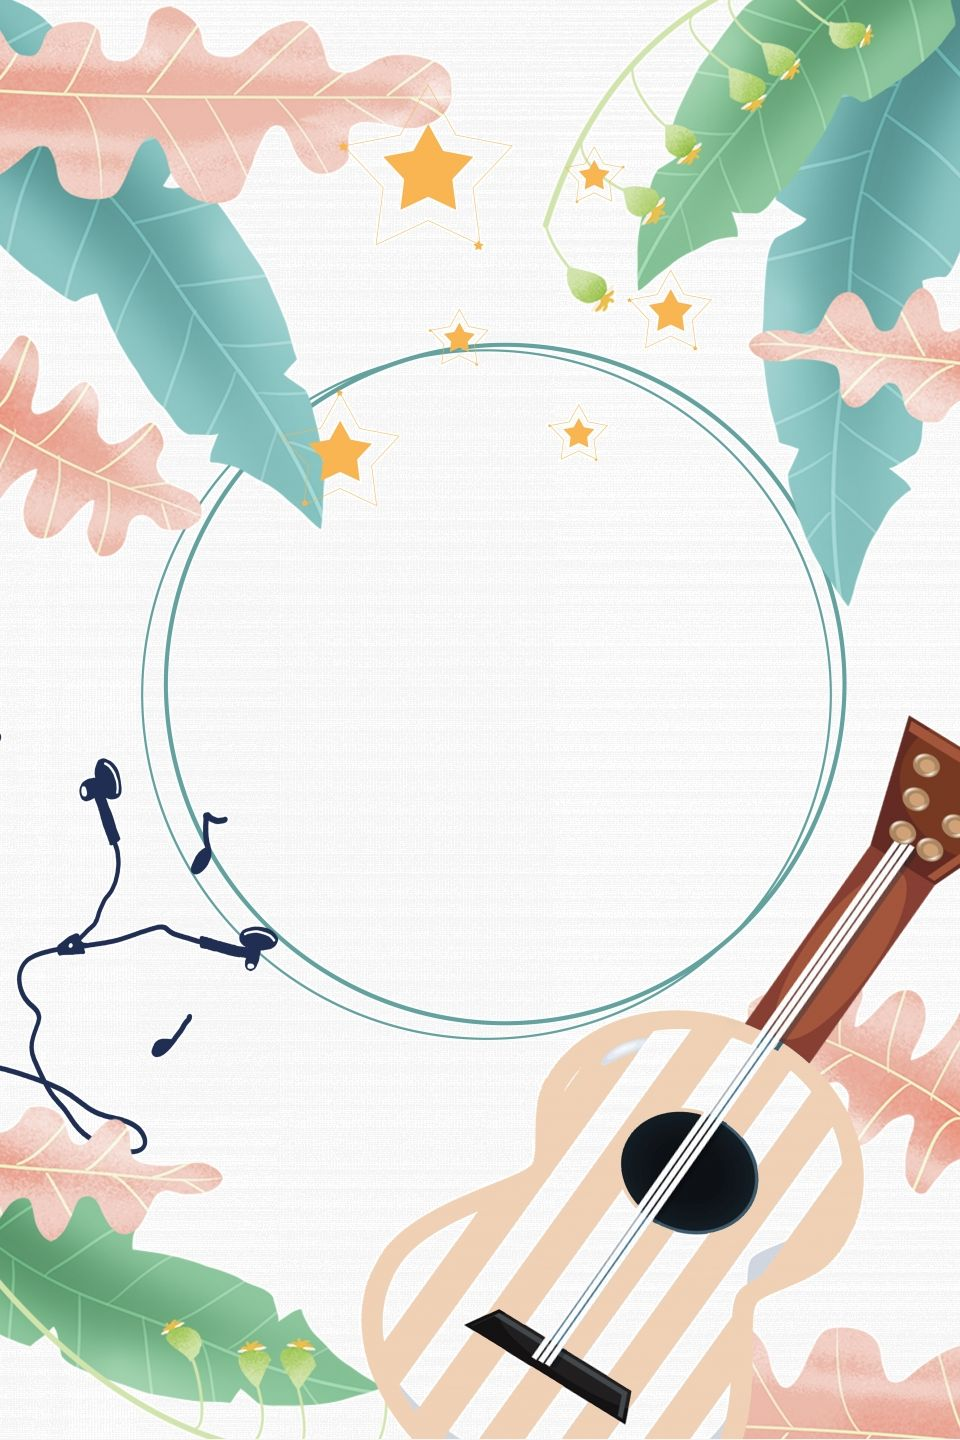 Musical Instrument World Children S Song Day Cute Background Cute Backgrounds Music Poster Design Music Border